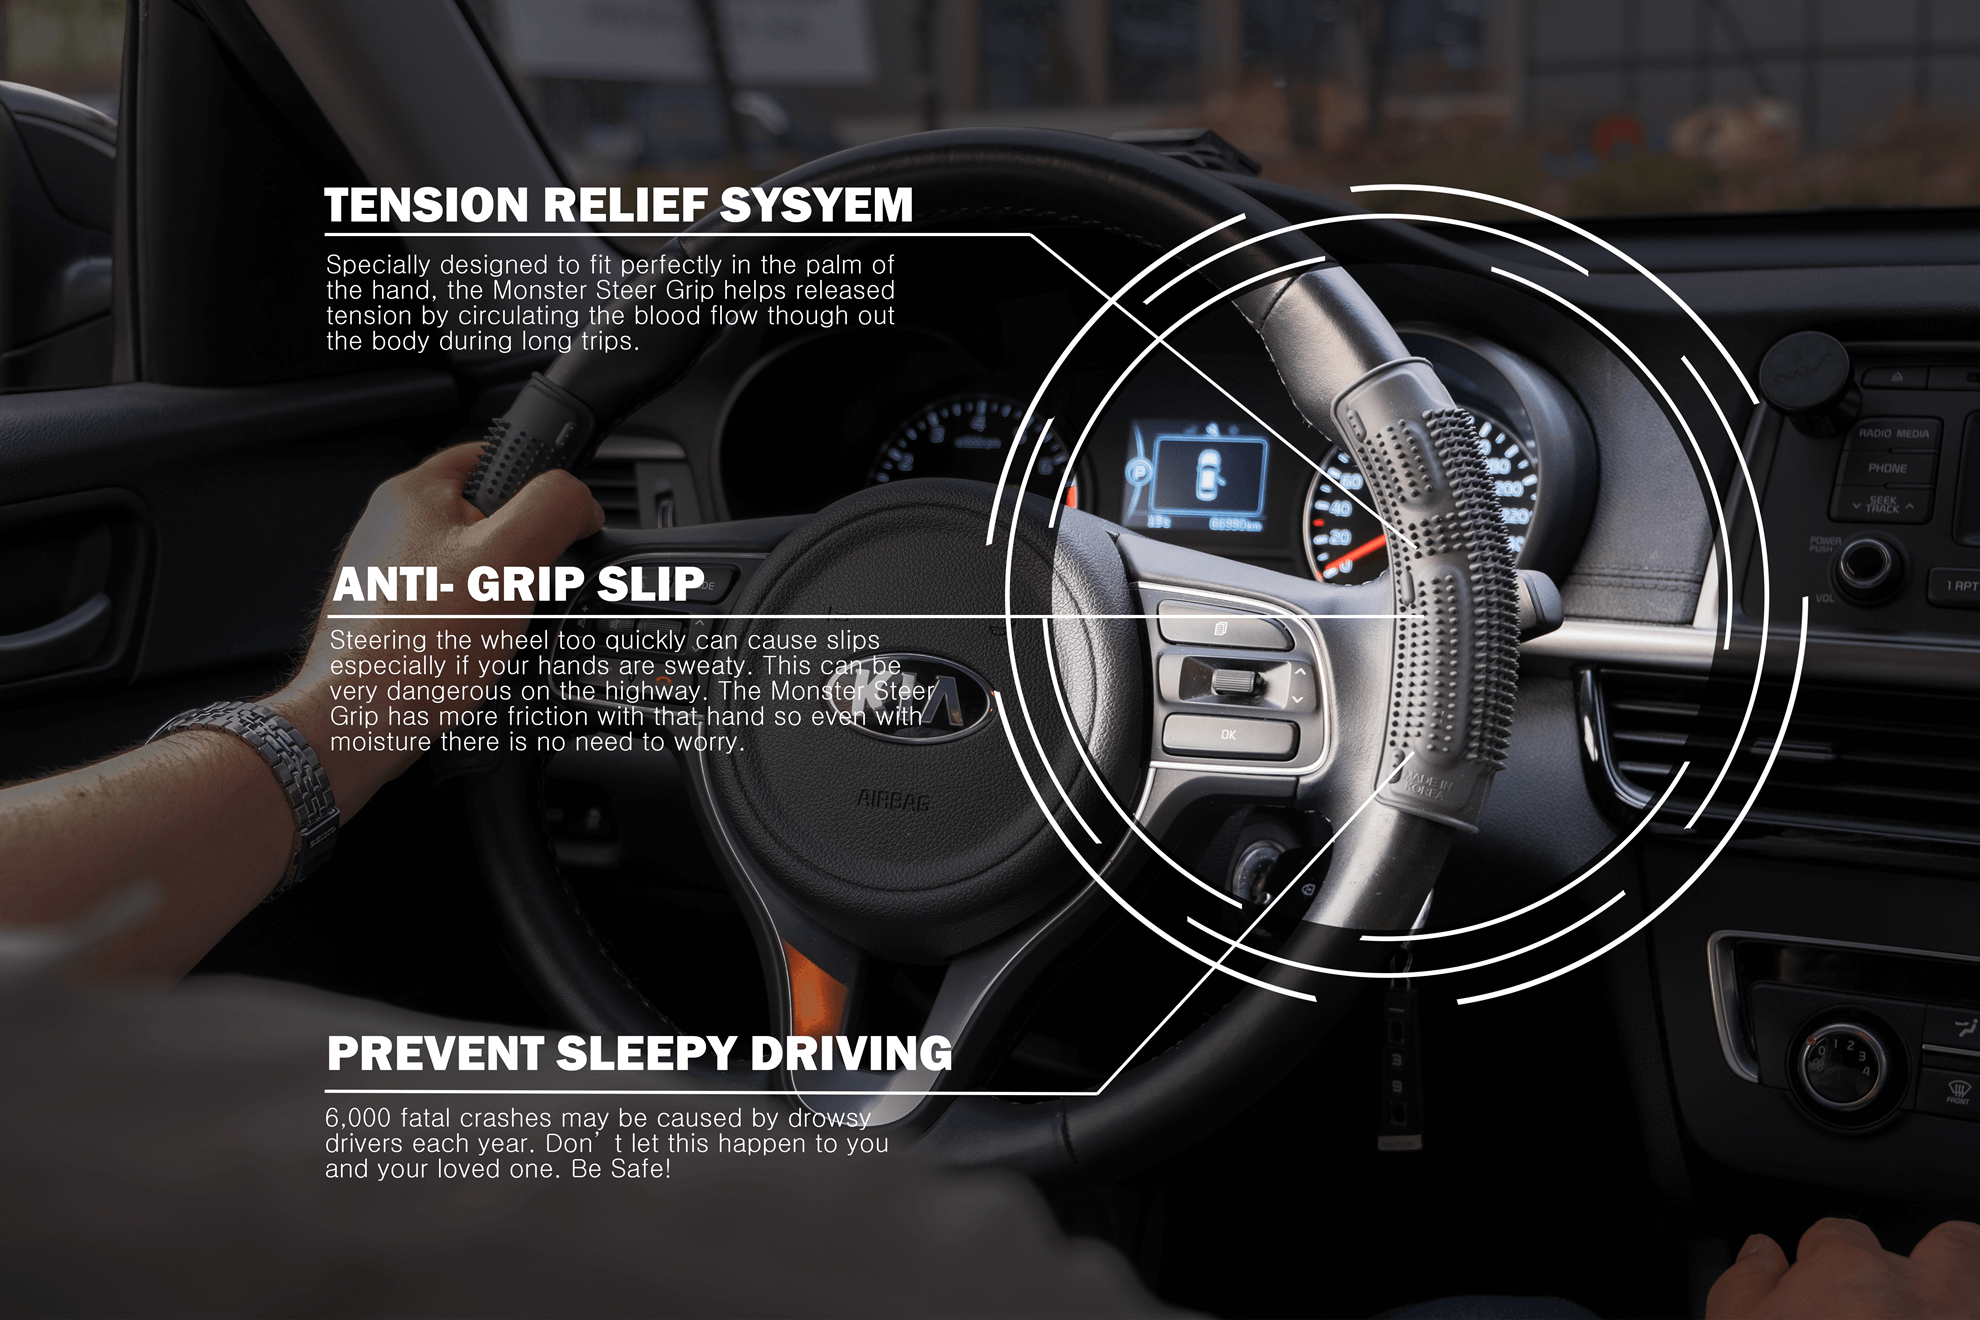 Introducing The Monster Grip An Anti Slip Sleep Prevention Grip For Long Term Drivers Drowsy Driving Massage Therapy Techniques How To Fall Asleep